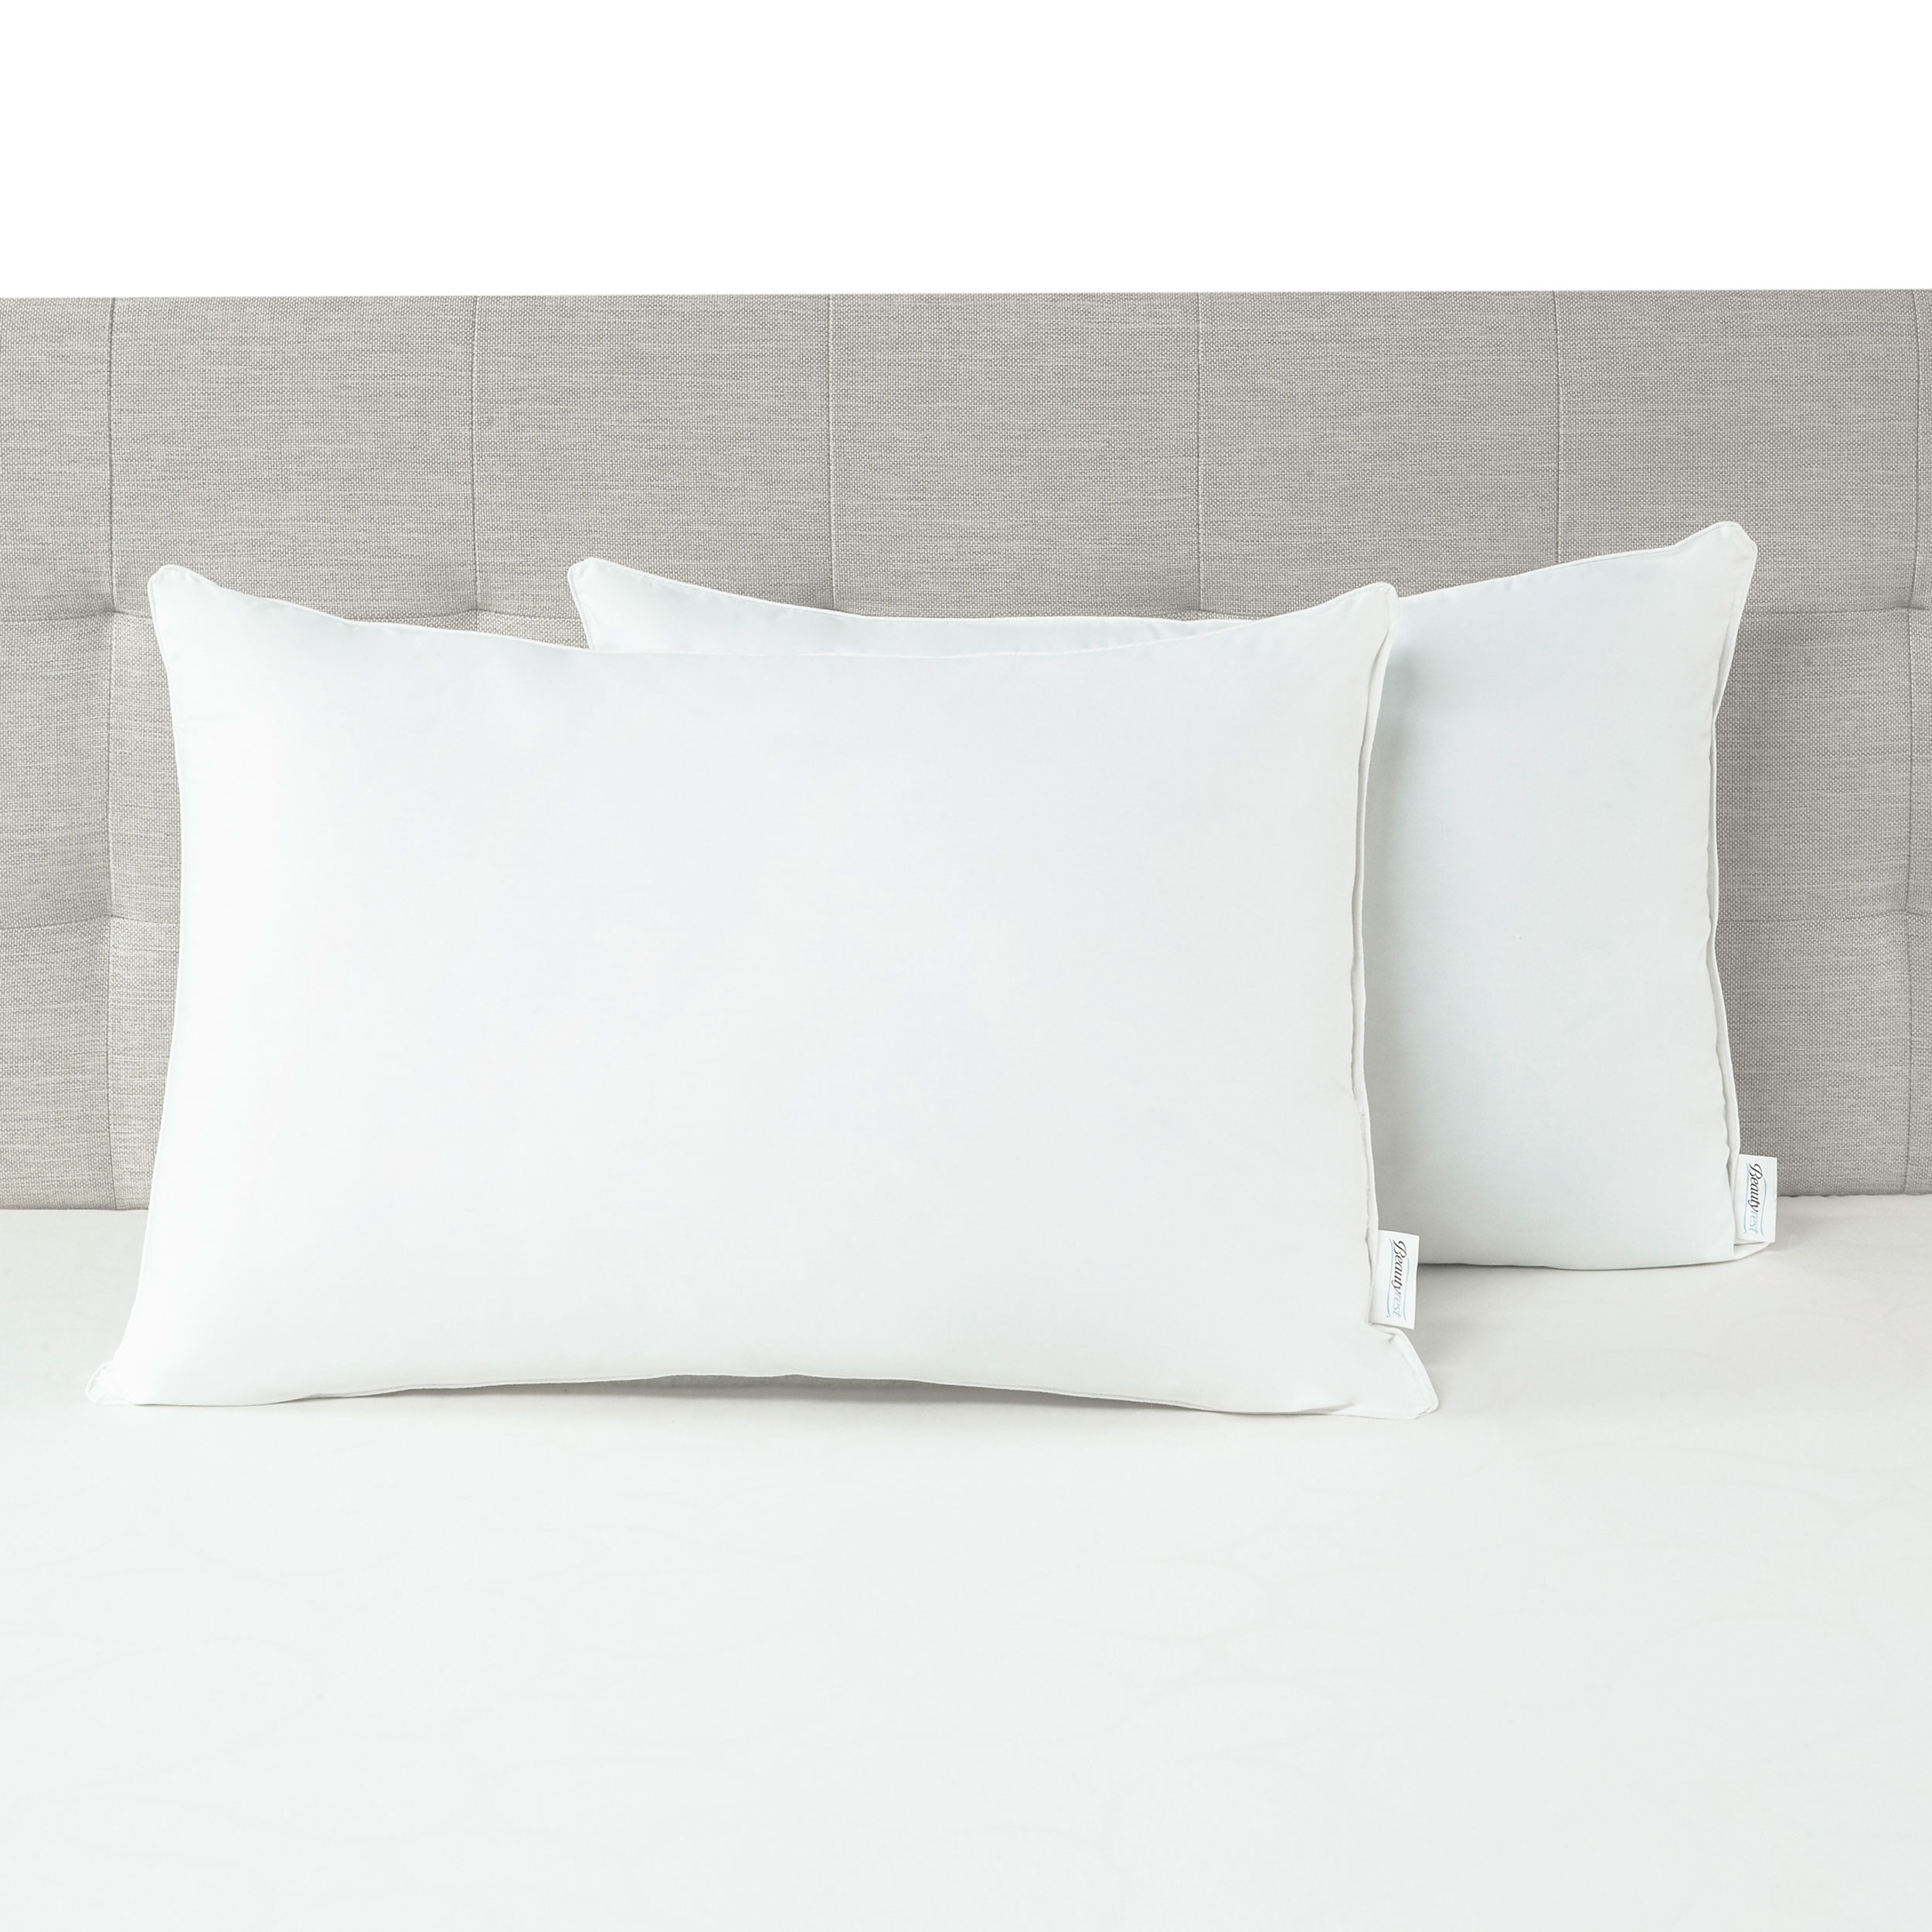 Beautyrest 174 Cooling Pillow 2 Pack Livecomfortably